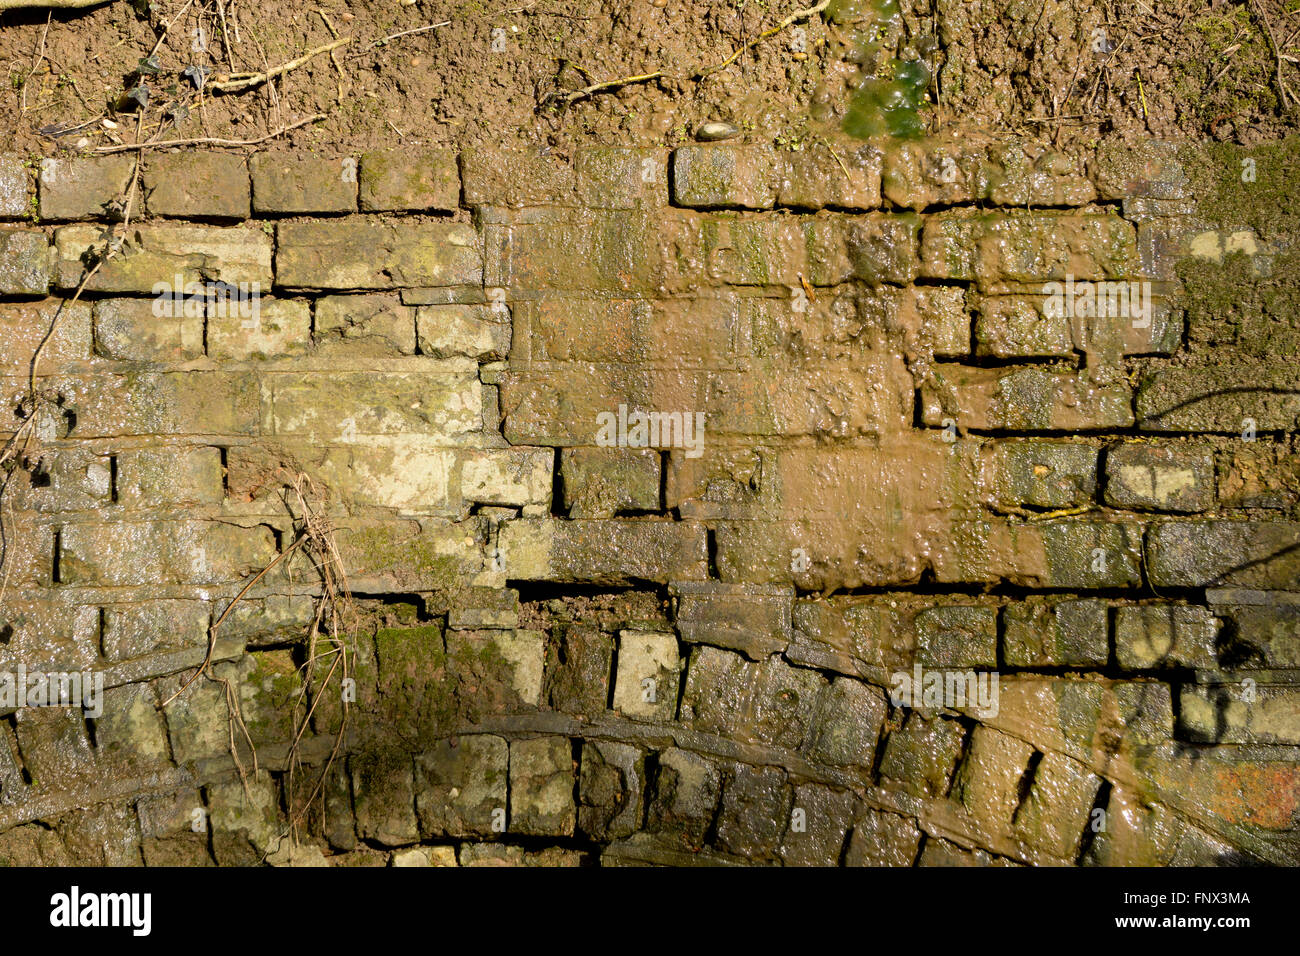 Crumbling brick wall with water running down. - Stock Image